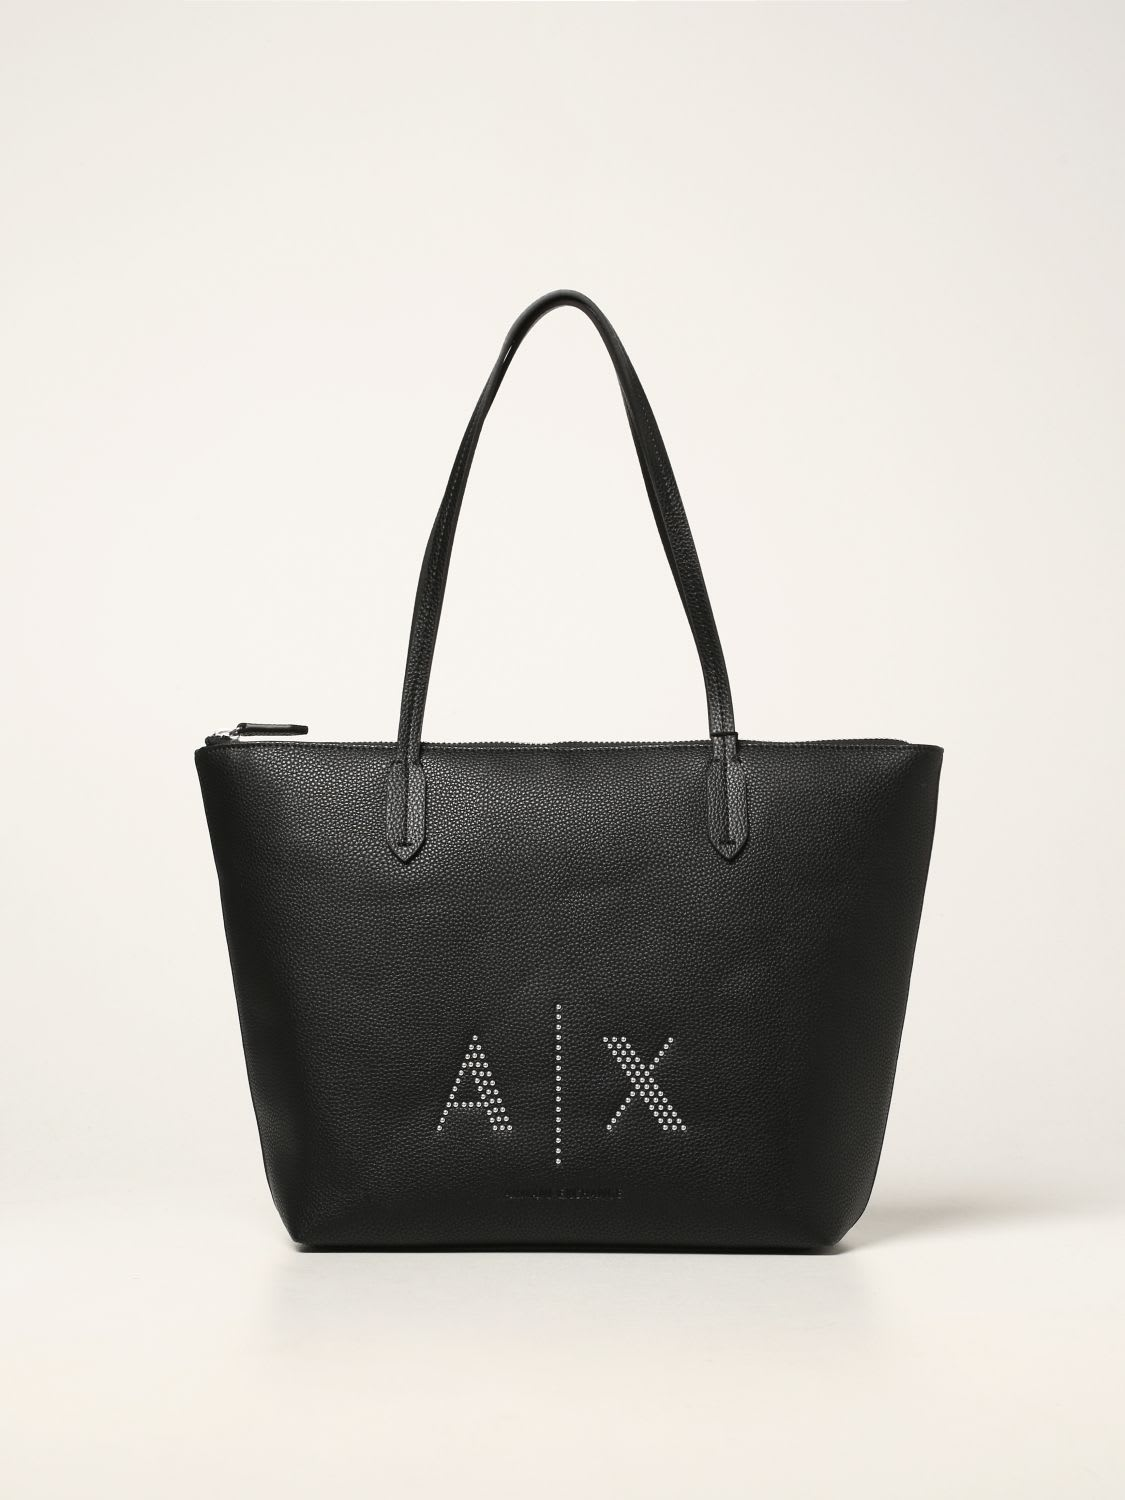 Armani Exchange Tote Bags Armani Exchange Shoulder Bag In Textured Synthetic Leather